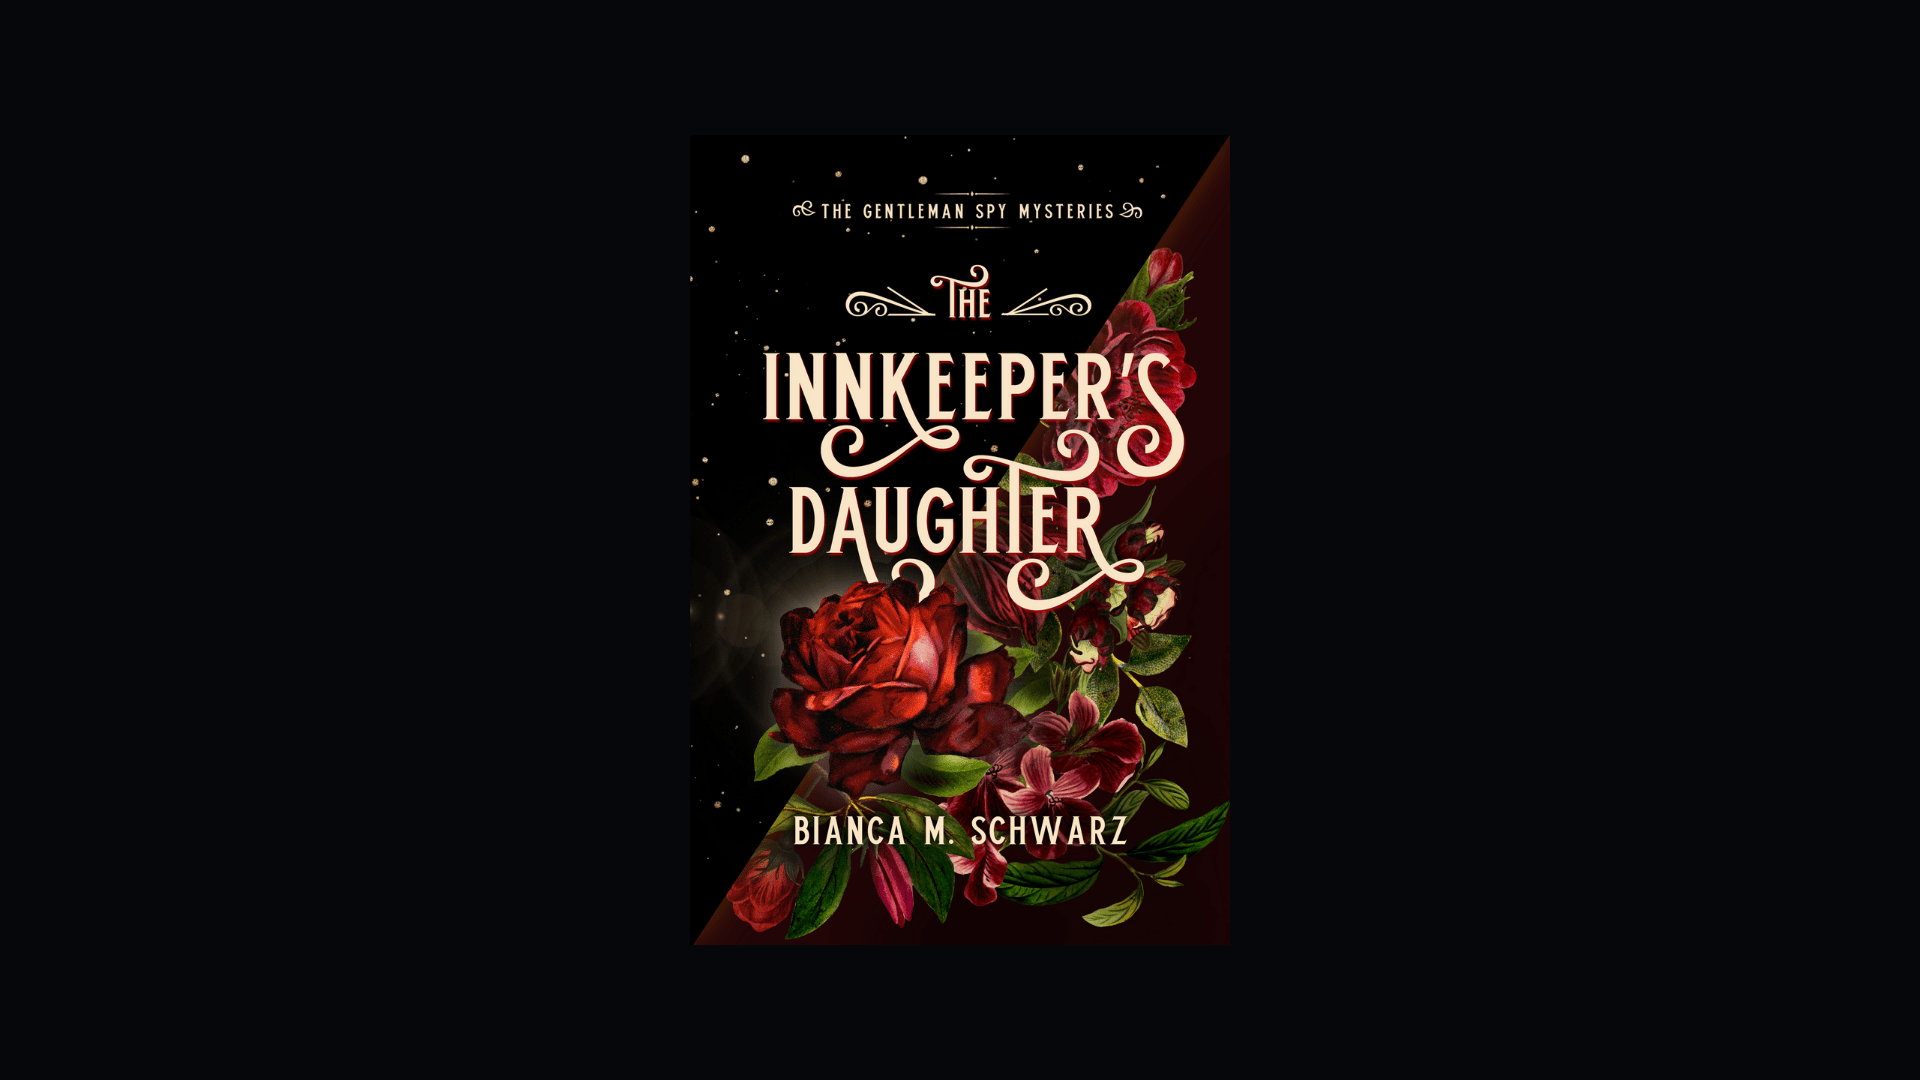 A picture of the book 'The Innkeeper's Daughter'